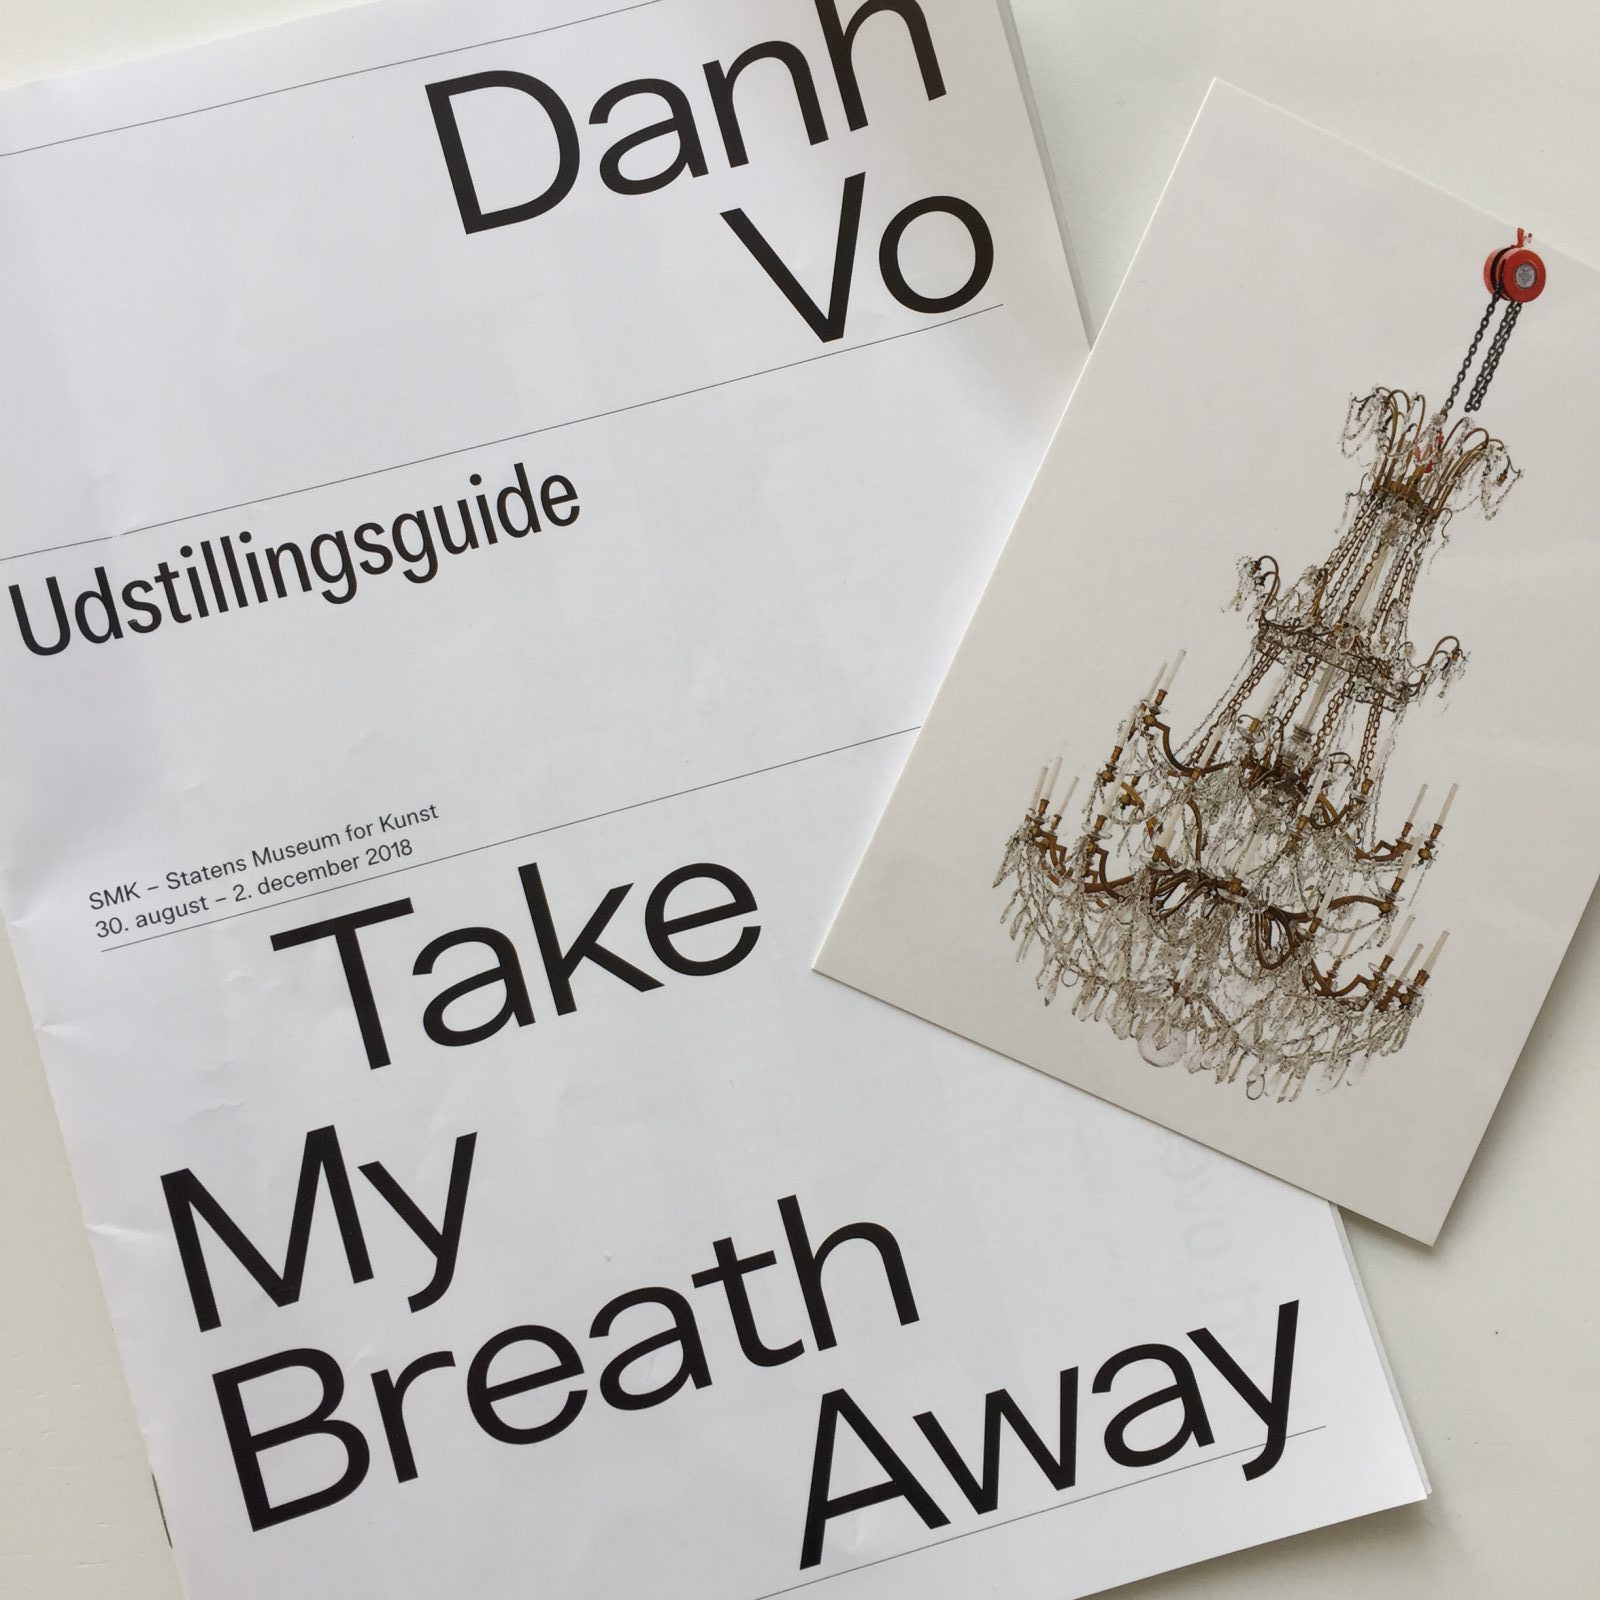 Danh Vo - Take my breath away